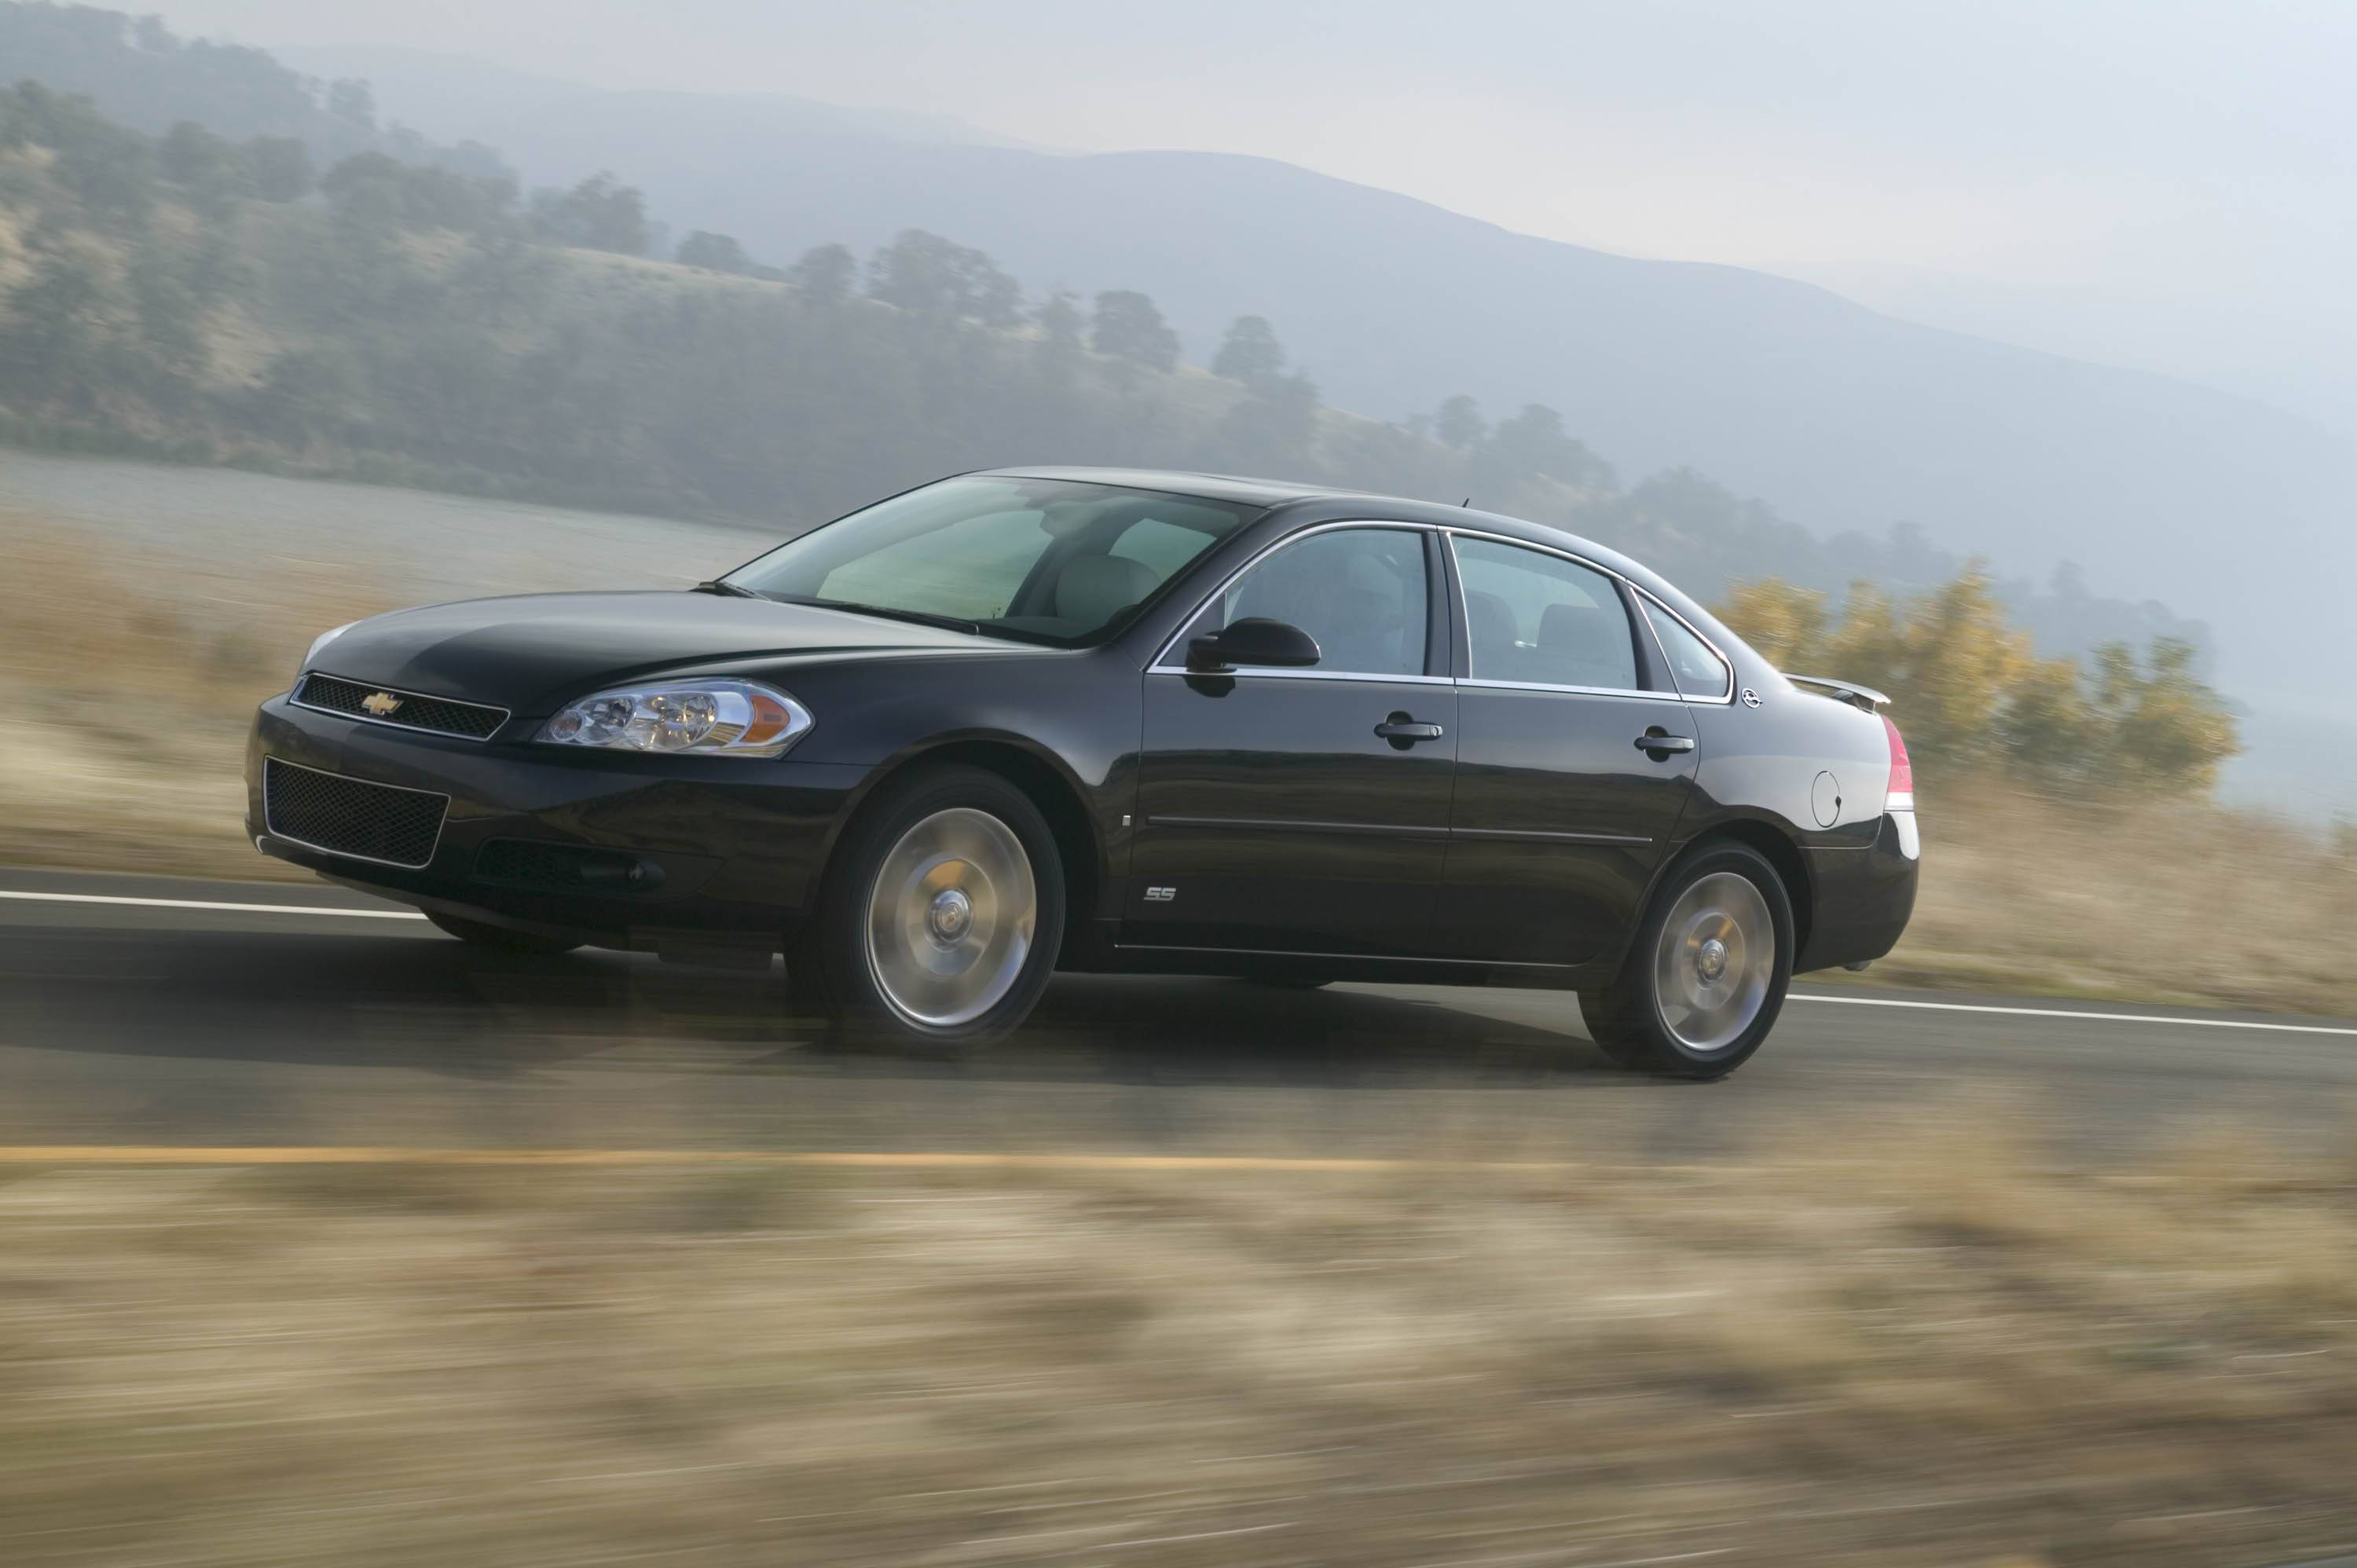 A lawsuit, filed the last week of June 2011, claims General Motors Co. fixed a defective part on police versions of the Chevrolet Impala but didn't correct the same problem in hundreds of thousands of other Impalas.